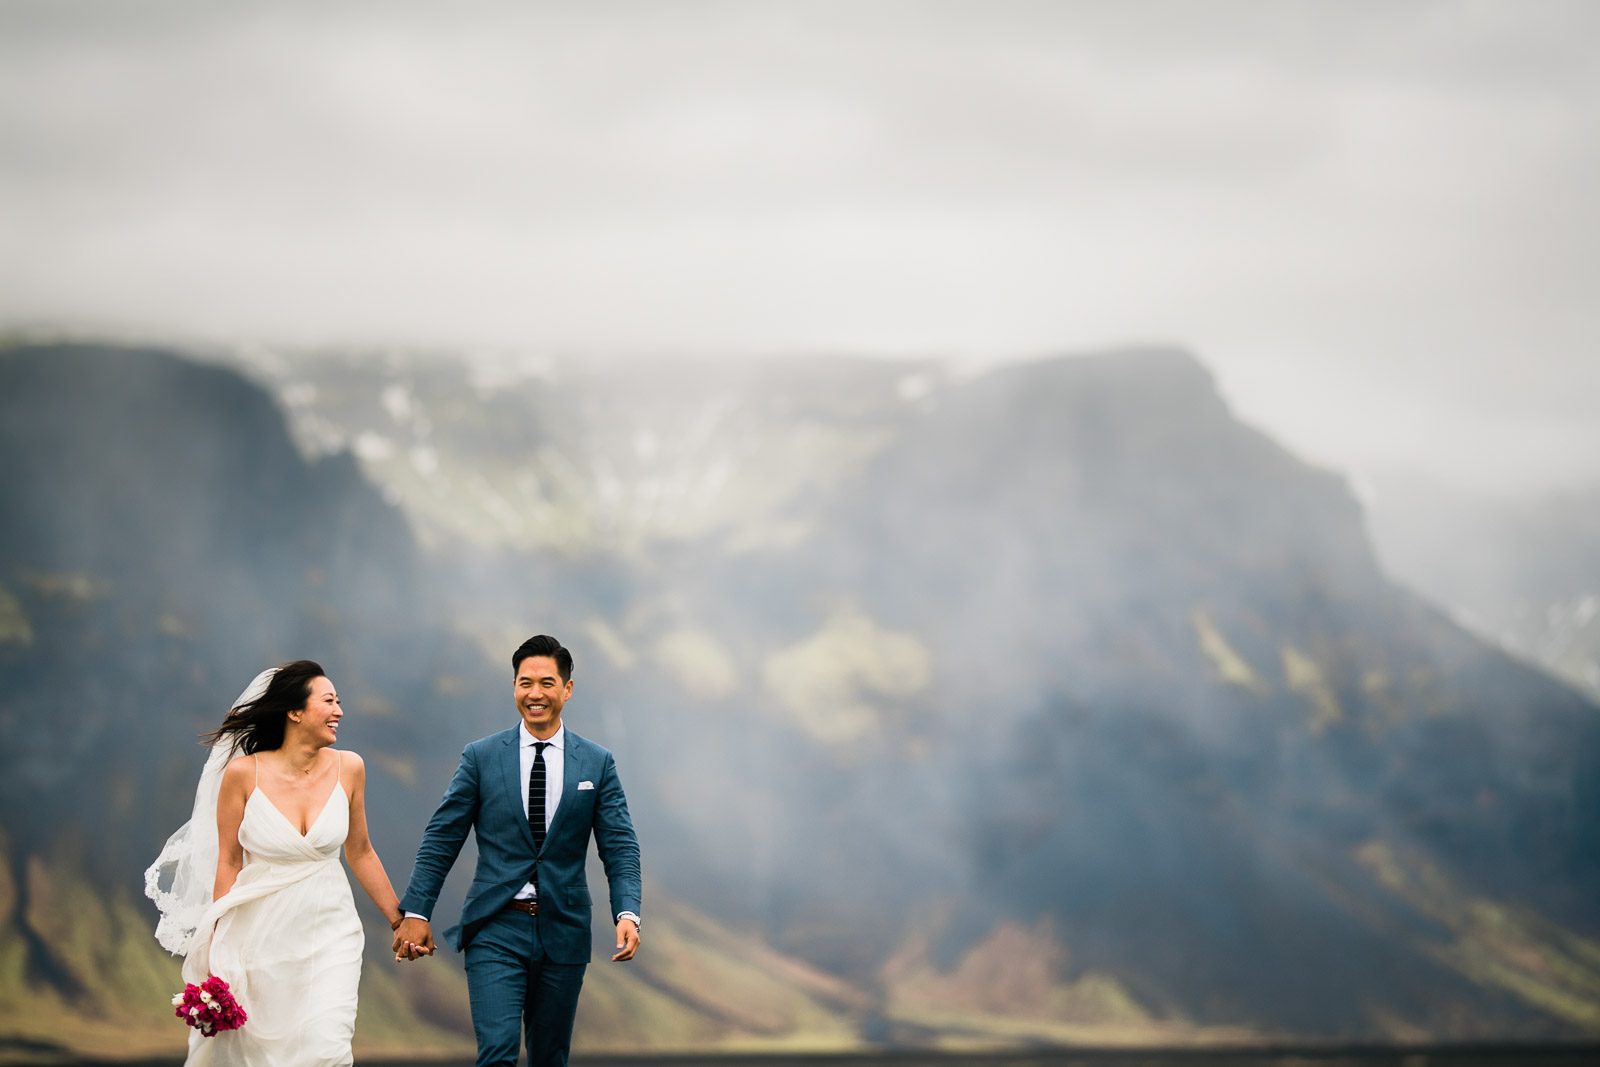 Jackie_Simon_Iceland_Elopement_Weddings_MJ_Studios-27